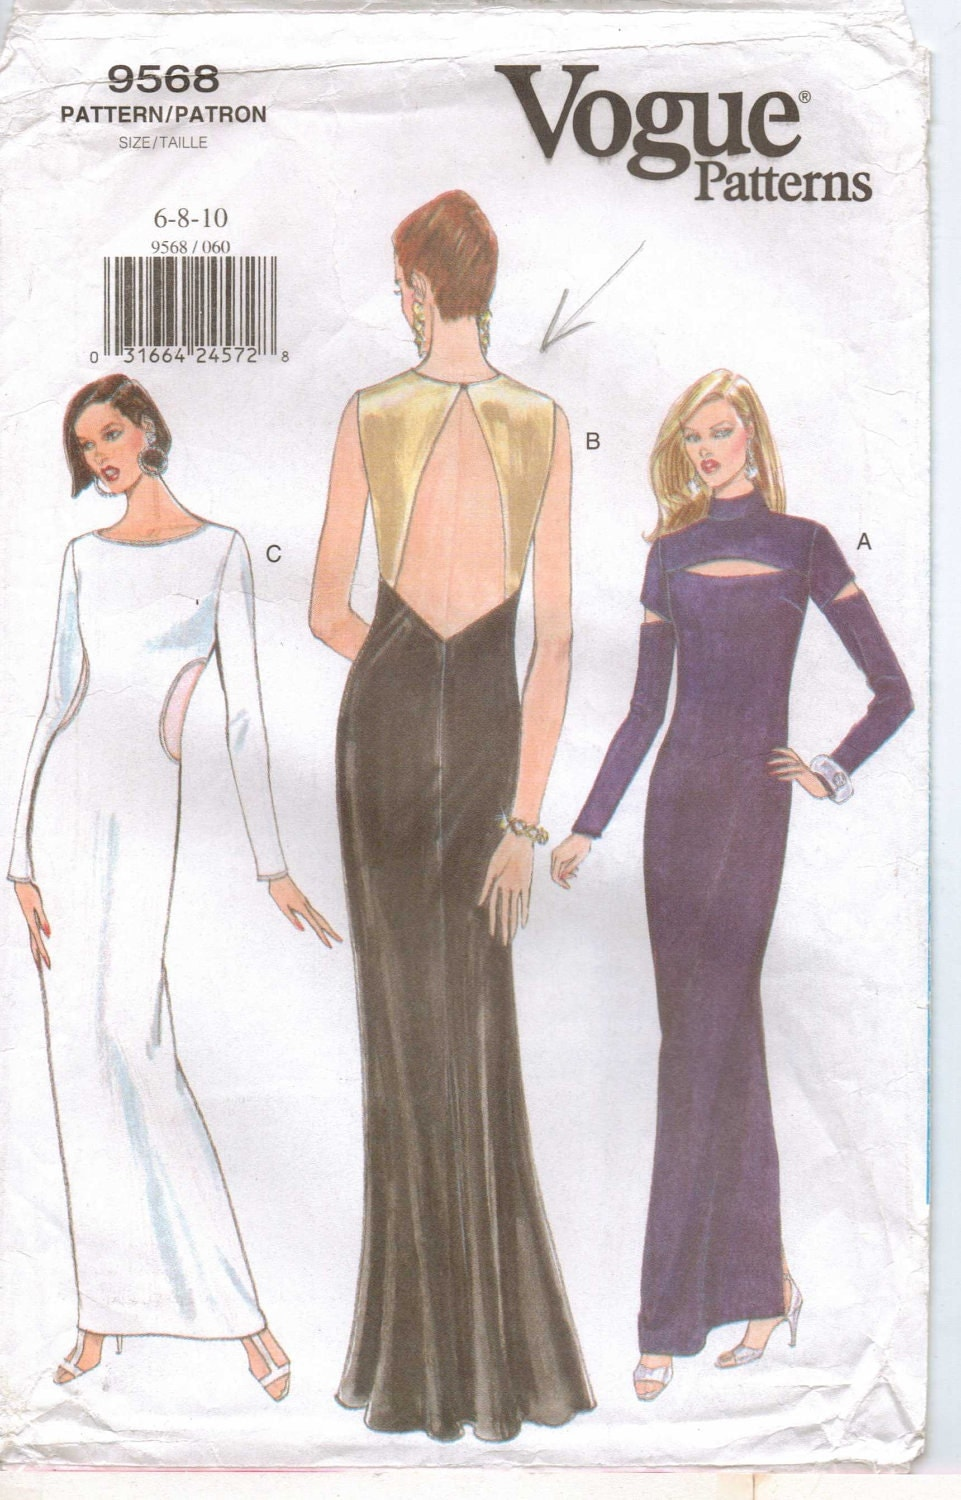 90s Vogue Pattern 9568 Womens Cut Out Evening Dress Size 6 8